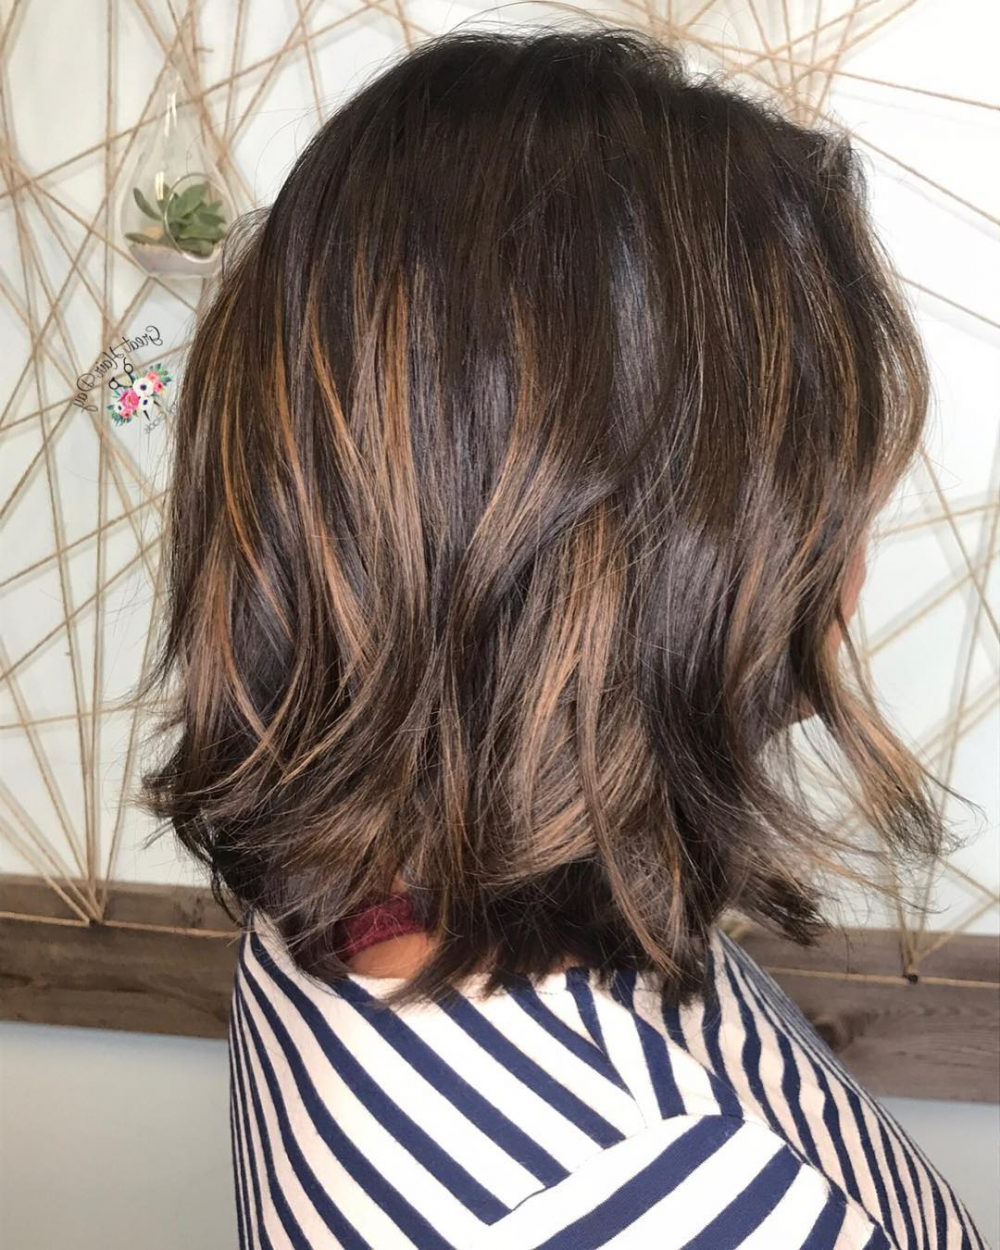 34 Sweetest Caramel Highlights On Light To Dark Brown Hair (2018) With Curly Dark Brown Bob Hairstyles With Partial Balayage (View 10 of 25)